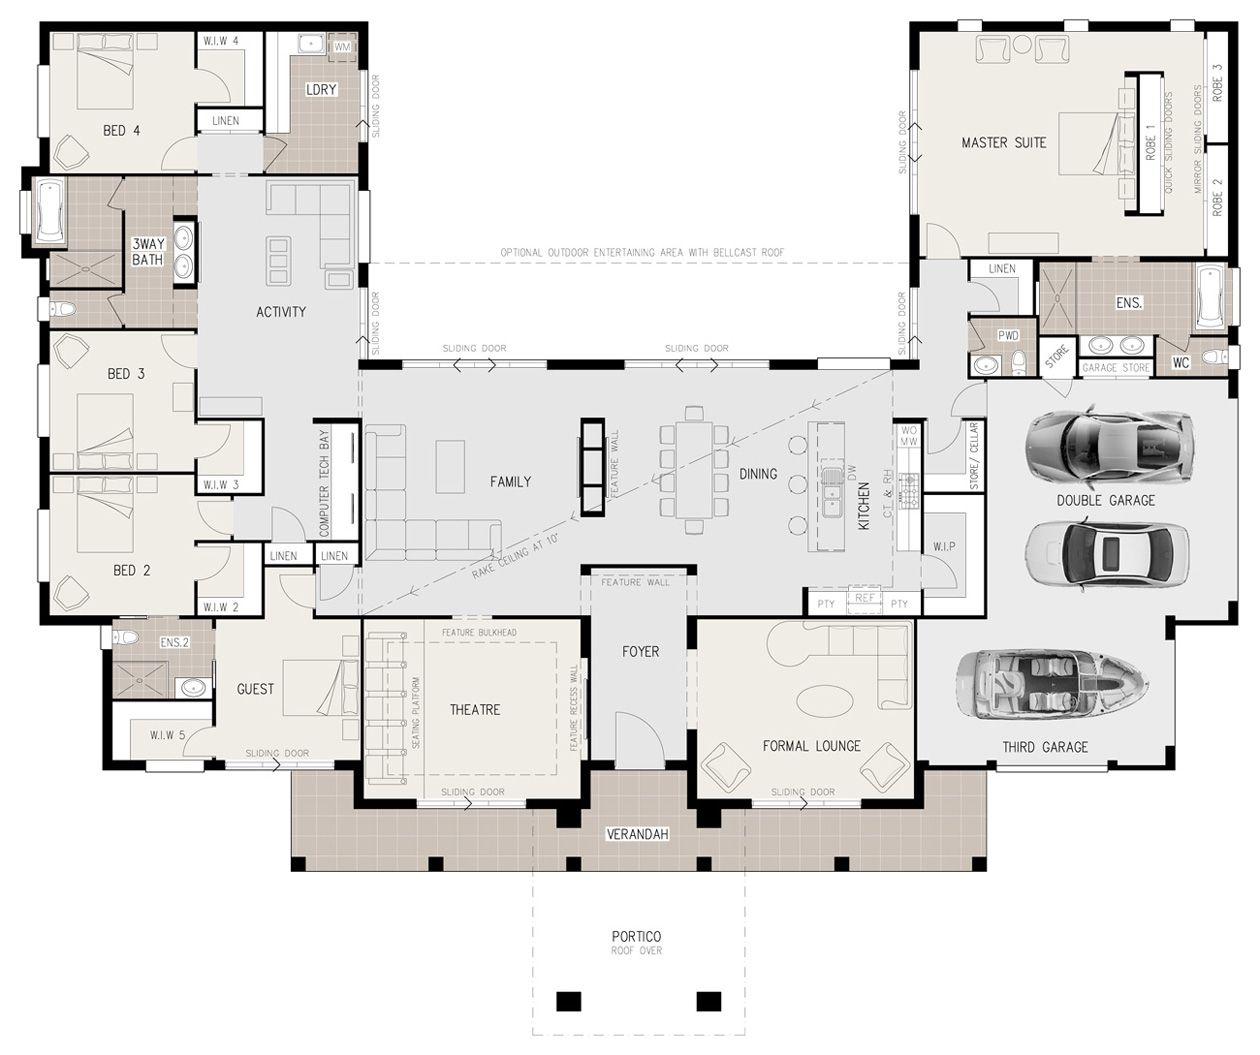 floor plan friday u shaped 5 bedroom family home - Horseshoe Shaped House Plans